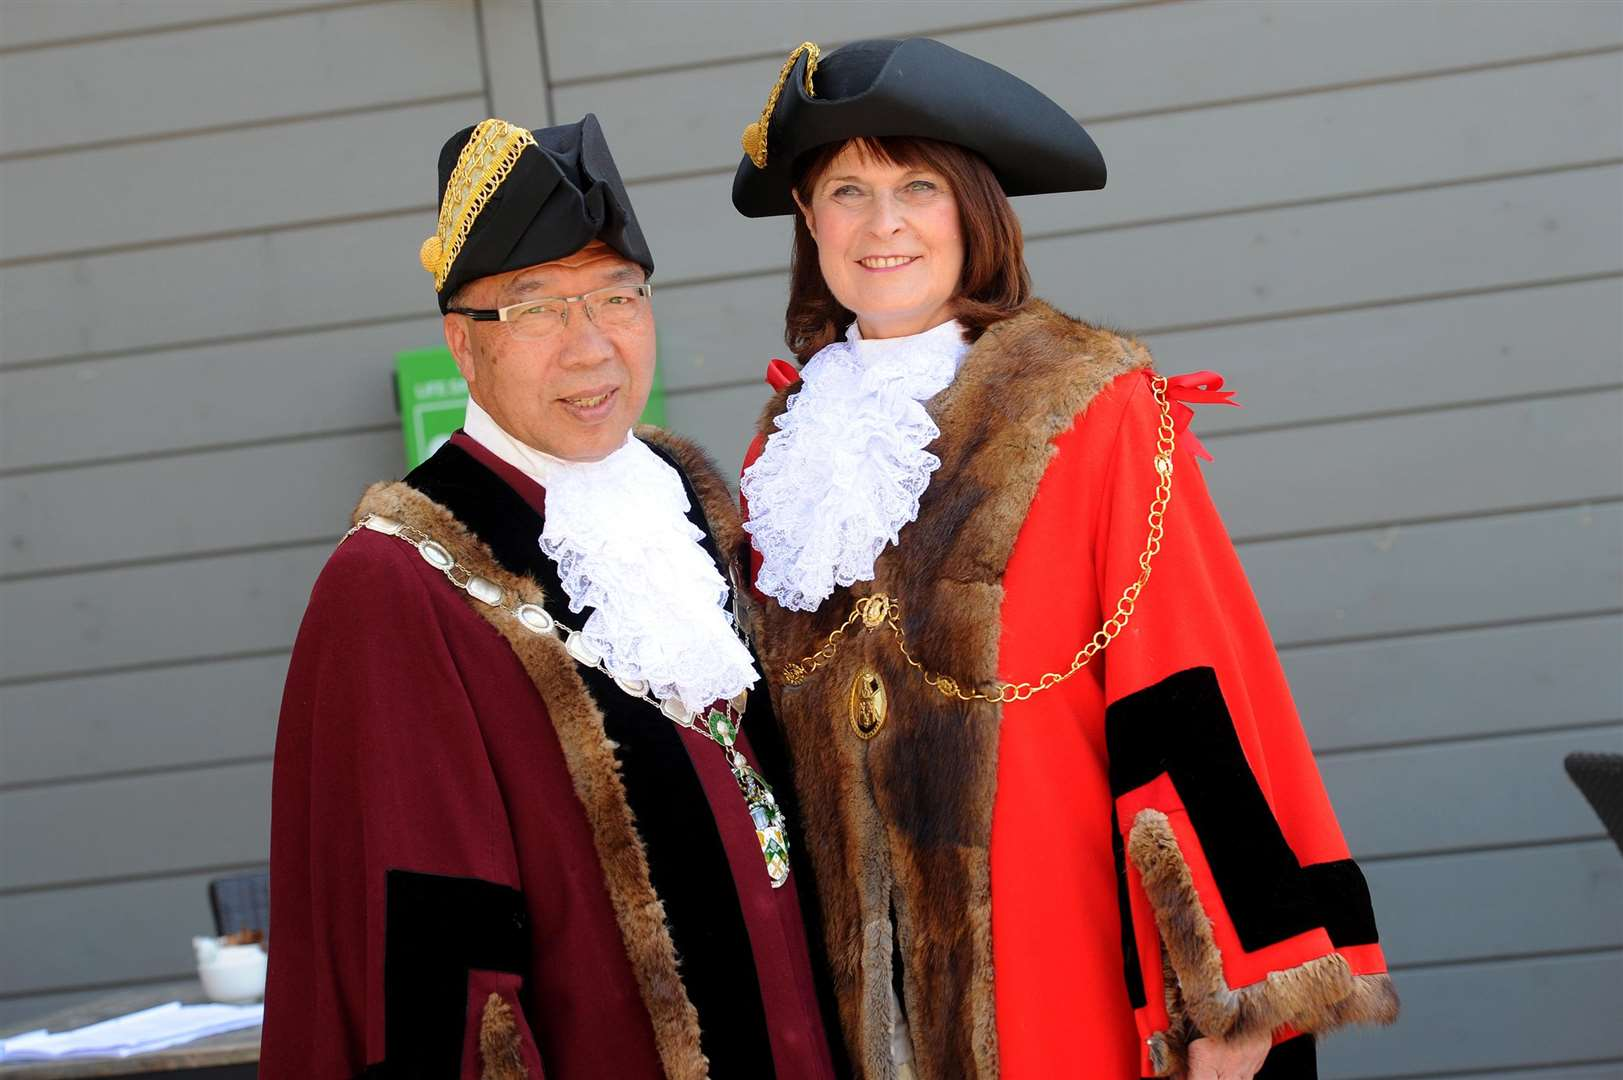 A working group will review the future of civic leadership in West Suffolk. Pictured are St Edmundsbury's current deputy mayor Patrick Chung and mayor Margaret Marks. PICTURE: Mecha Morton.